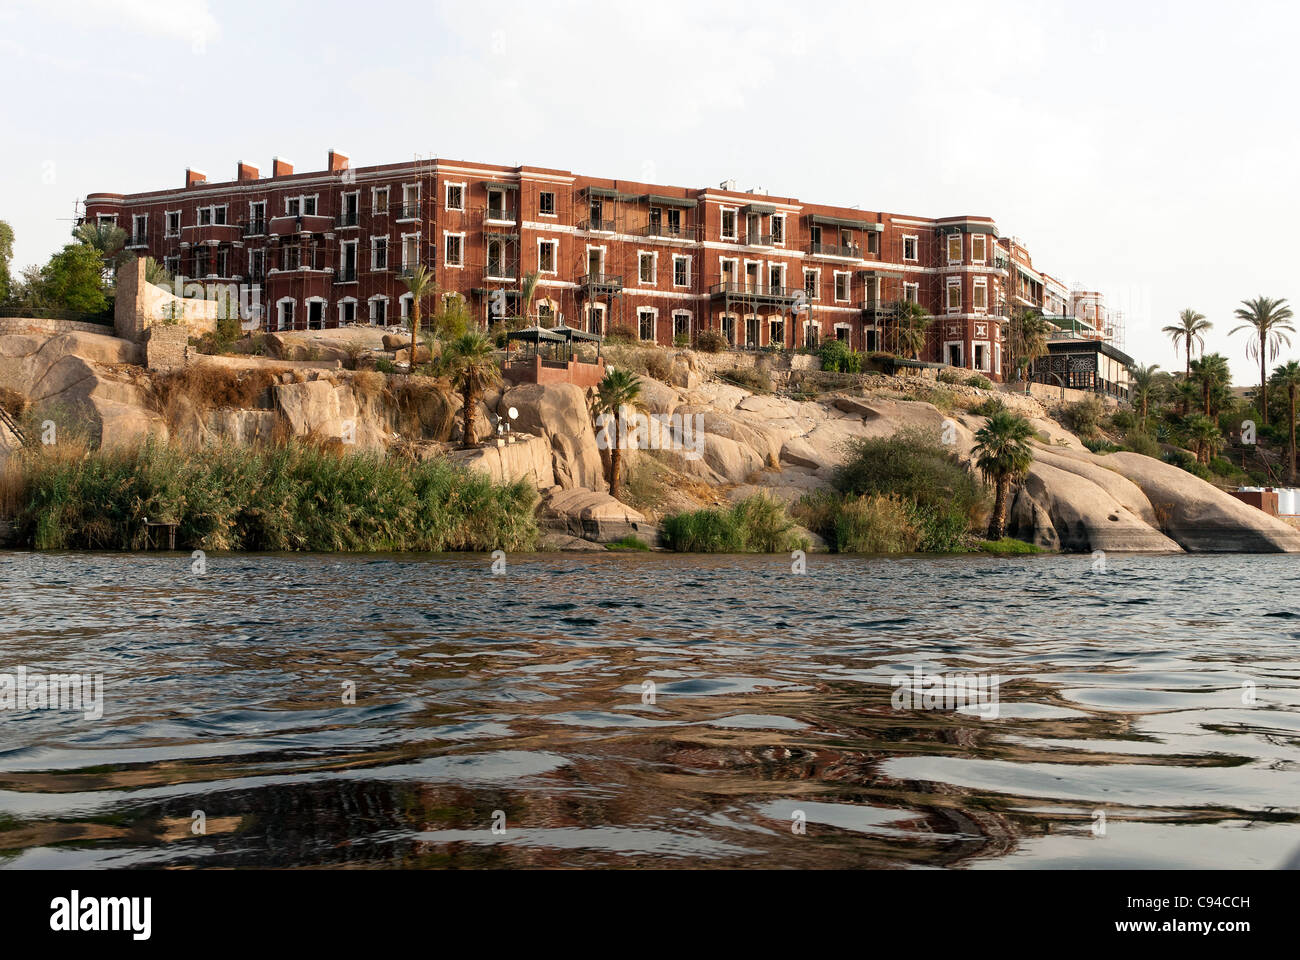 Old Cataract Hotel - Aswan, Upper Egypt - Stock Image